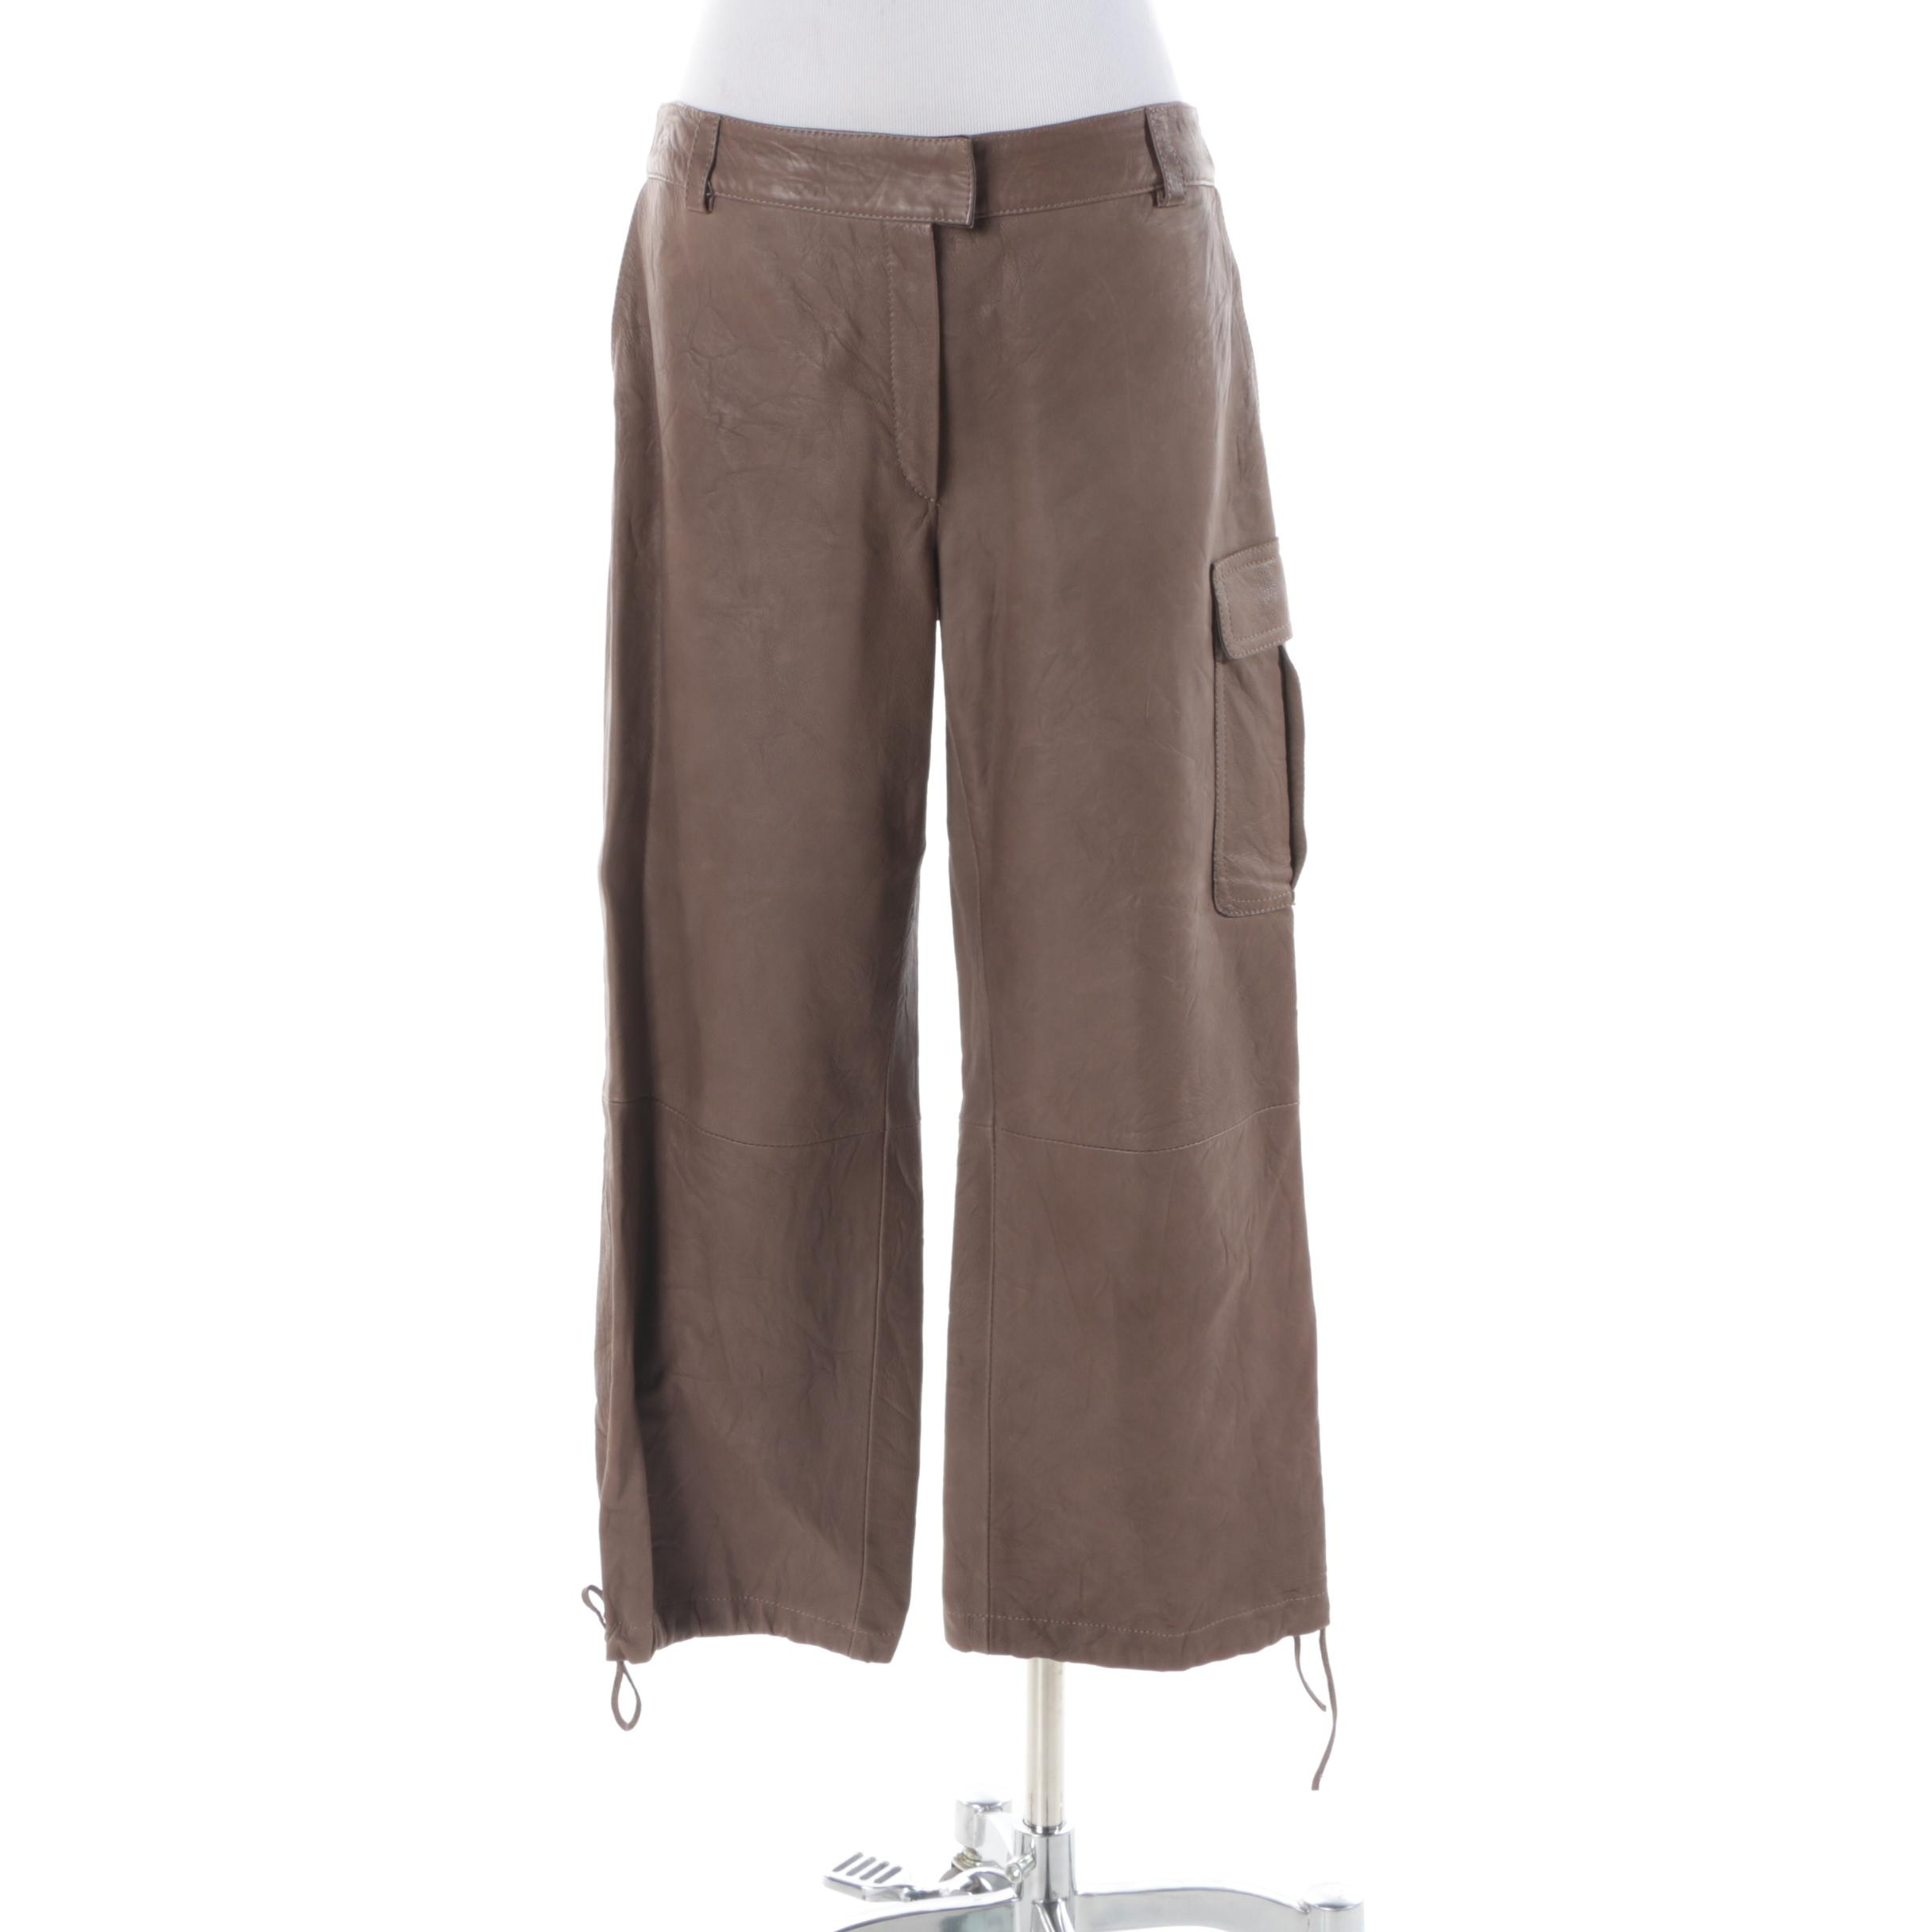 Women's Italian Made Brown Sheepskin Leather Pants